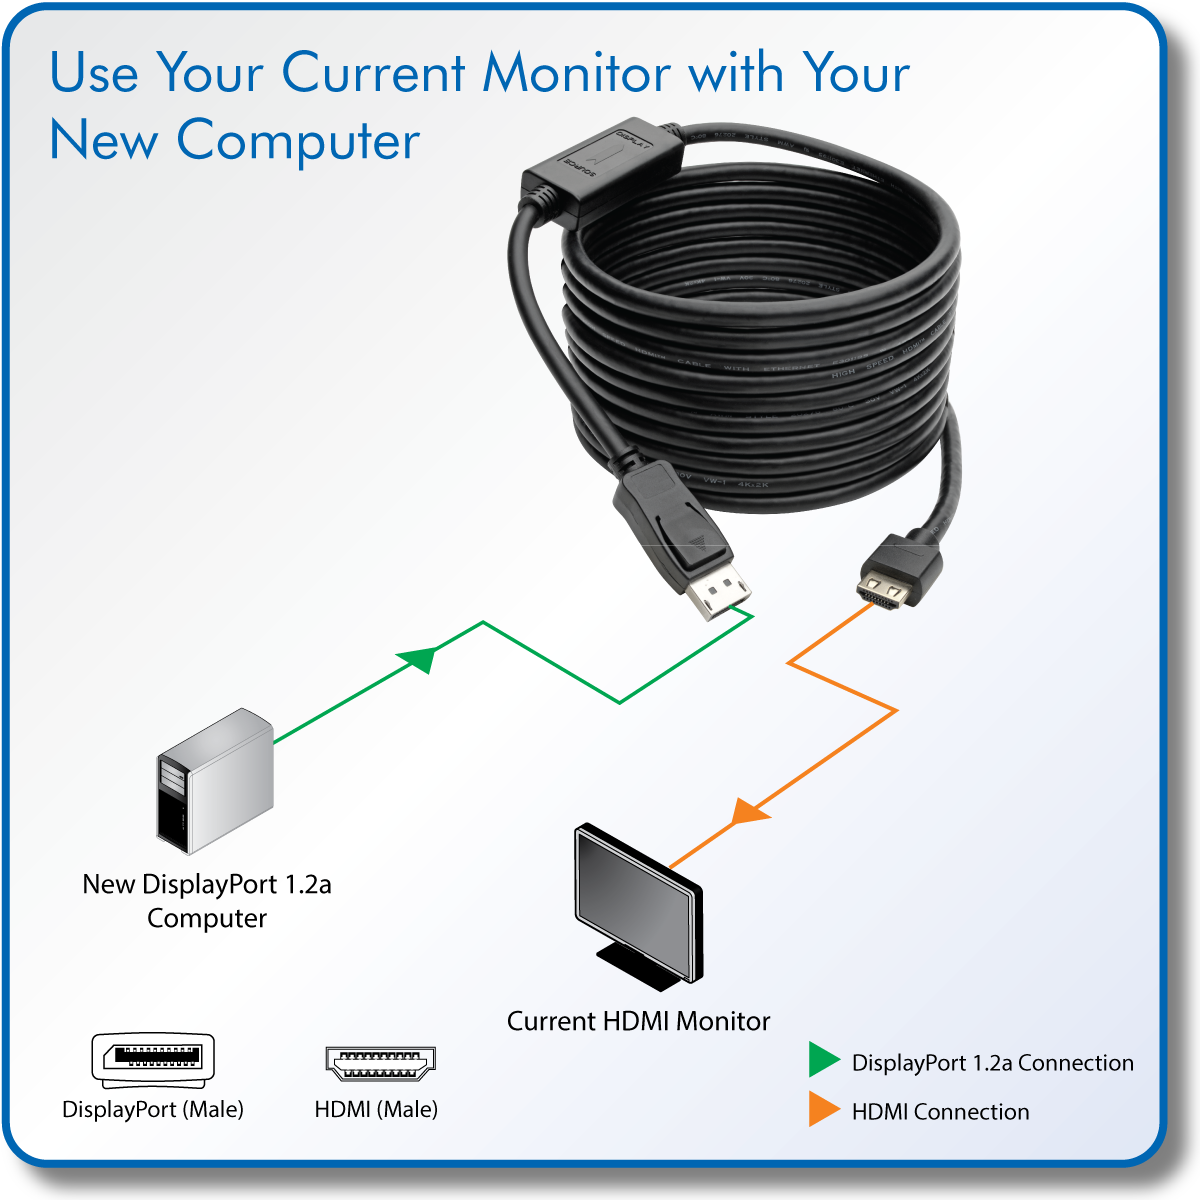 Tripp Lite Displayport 12a To Hdmi Adapter Cable Wiring Diagram For Plug View Larger